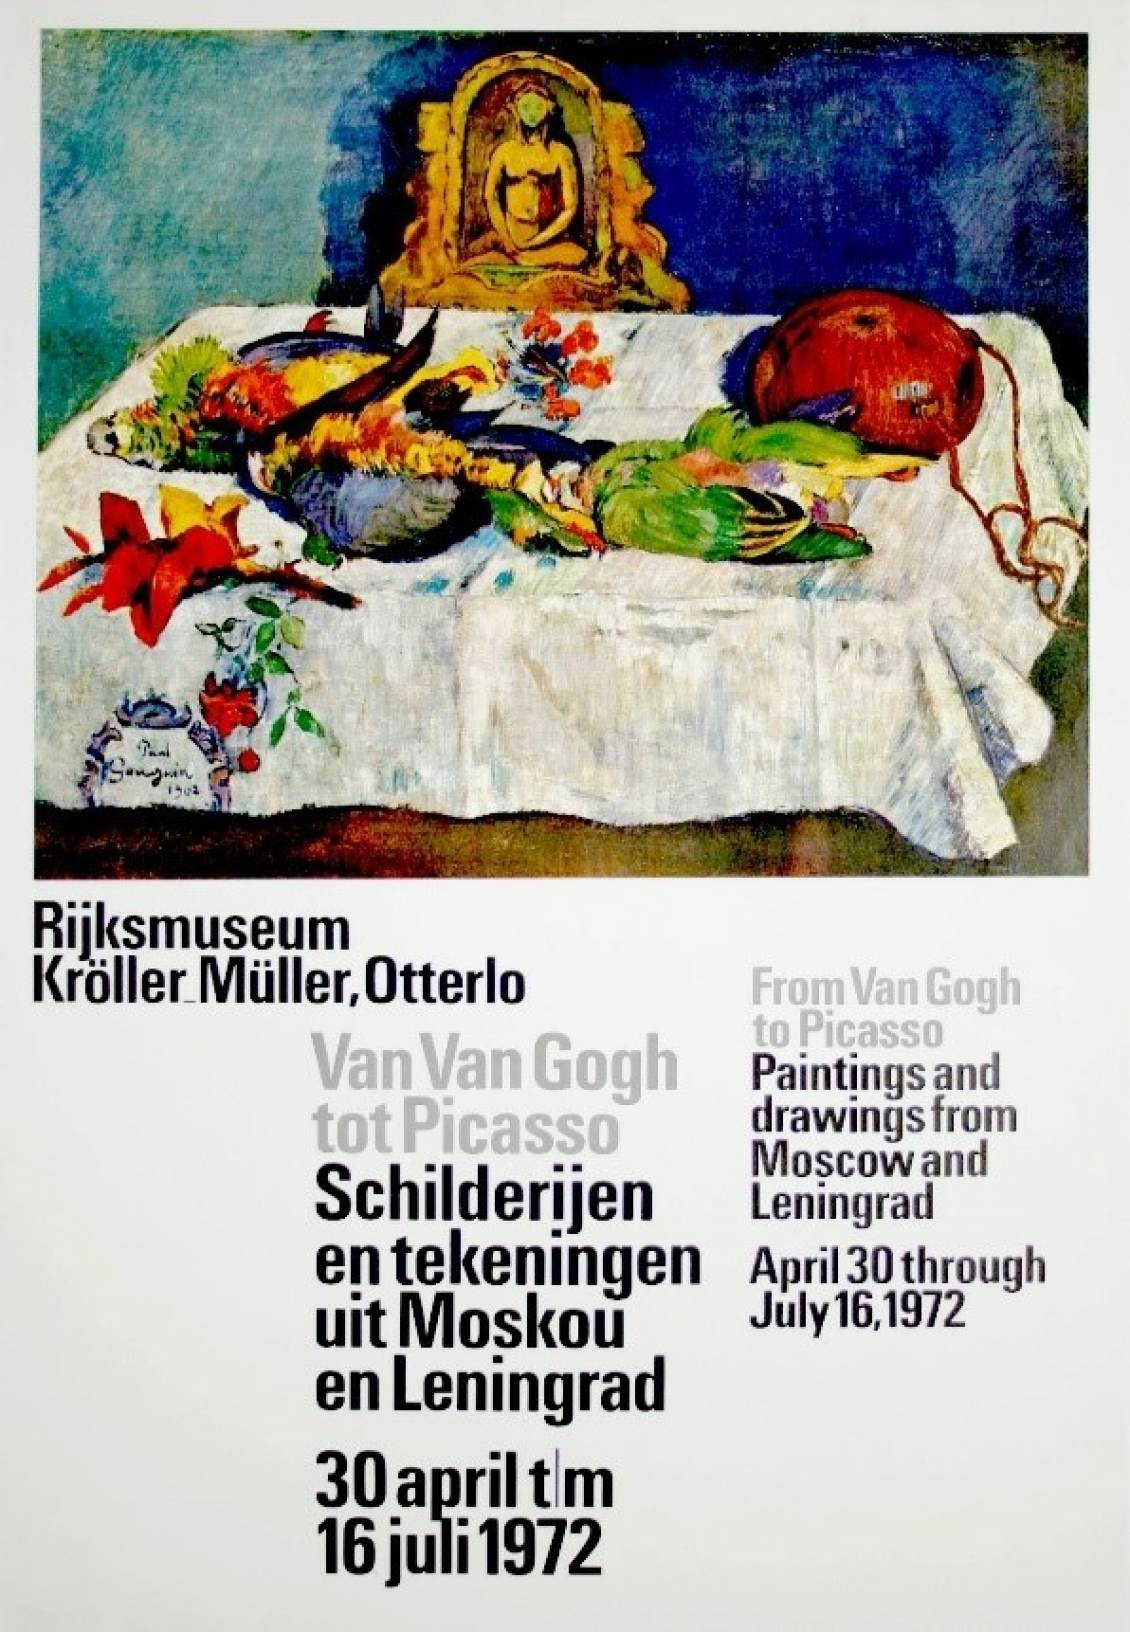 Poster From Van Gogh to Picasso, 1972